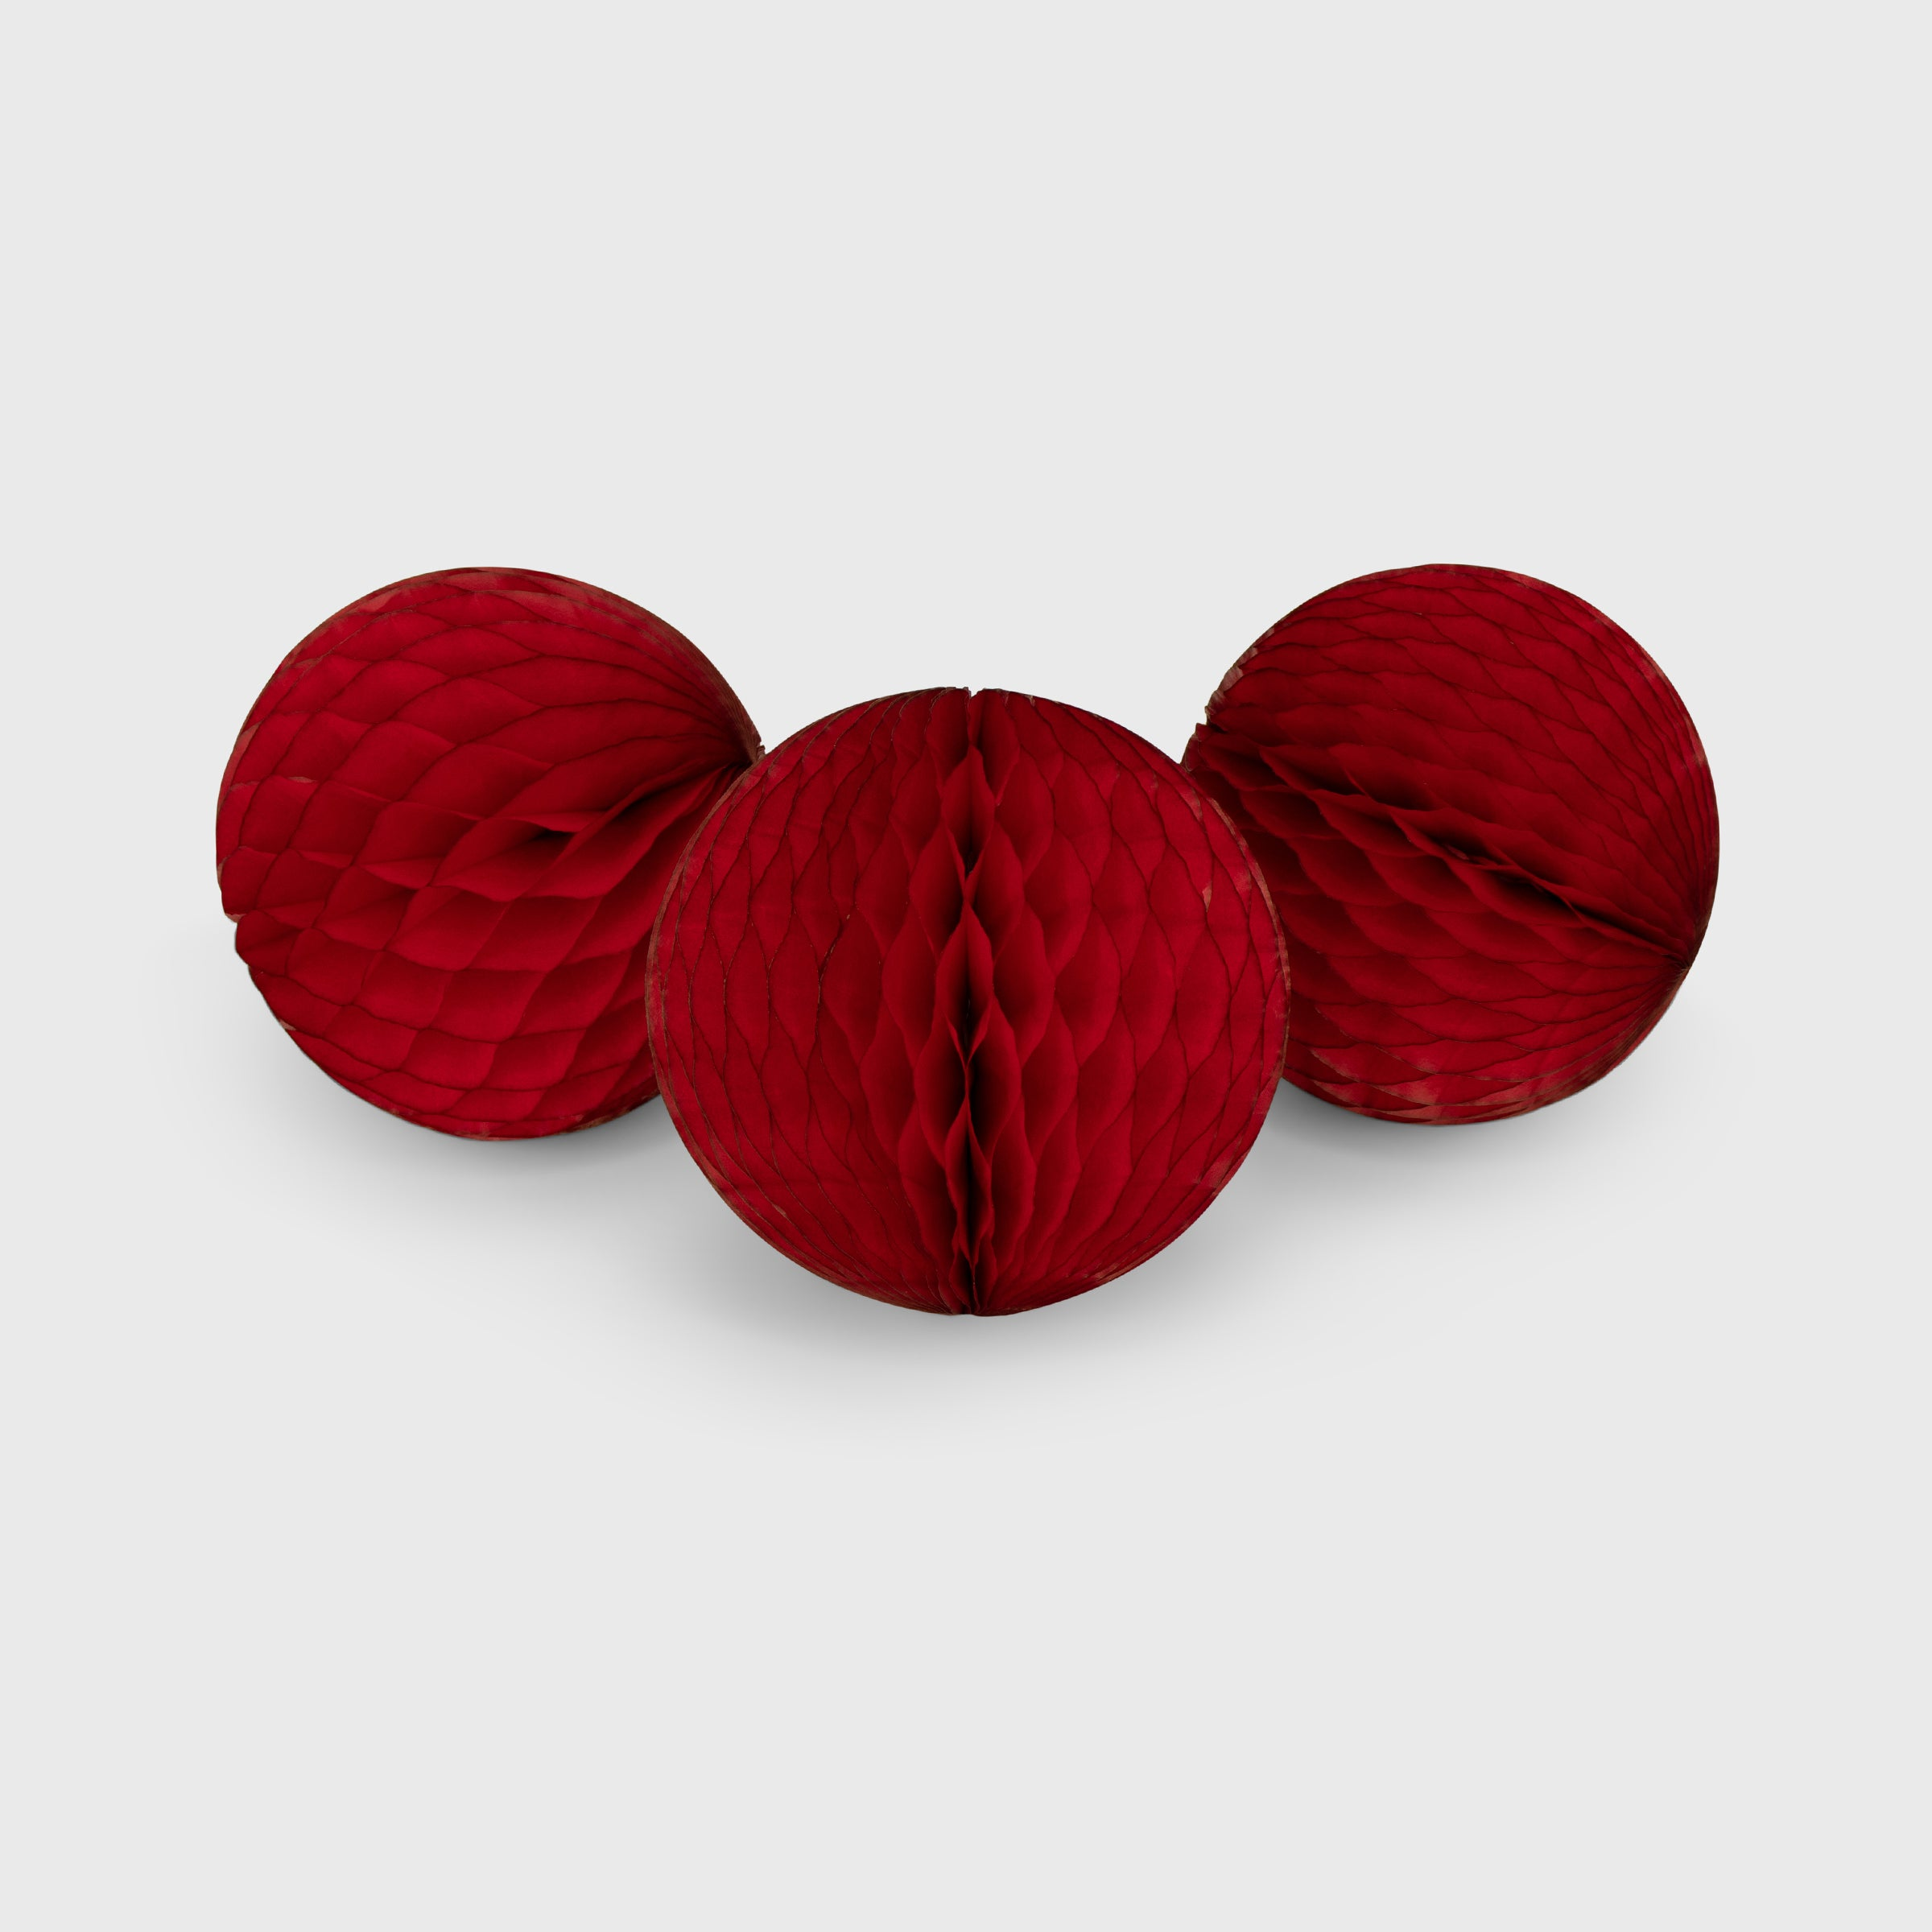 Honeycomb Ball 15 cm, Classic Red 3 pack